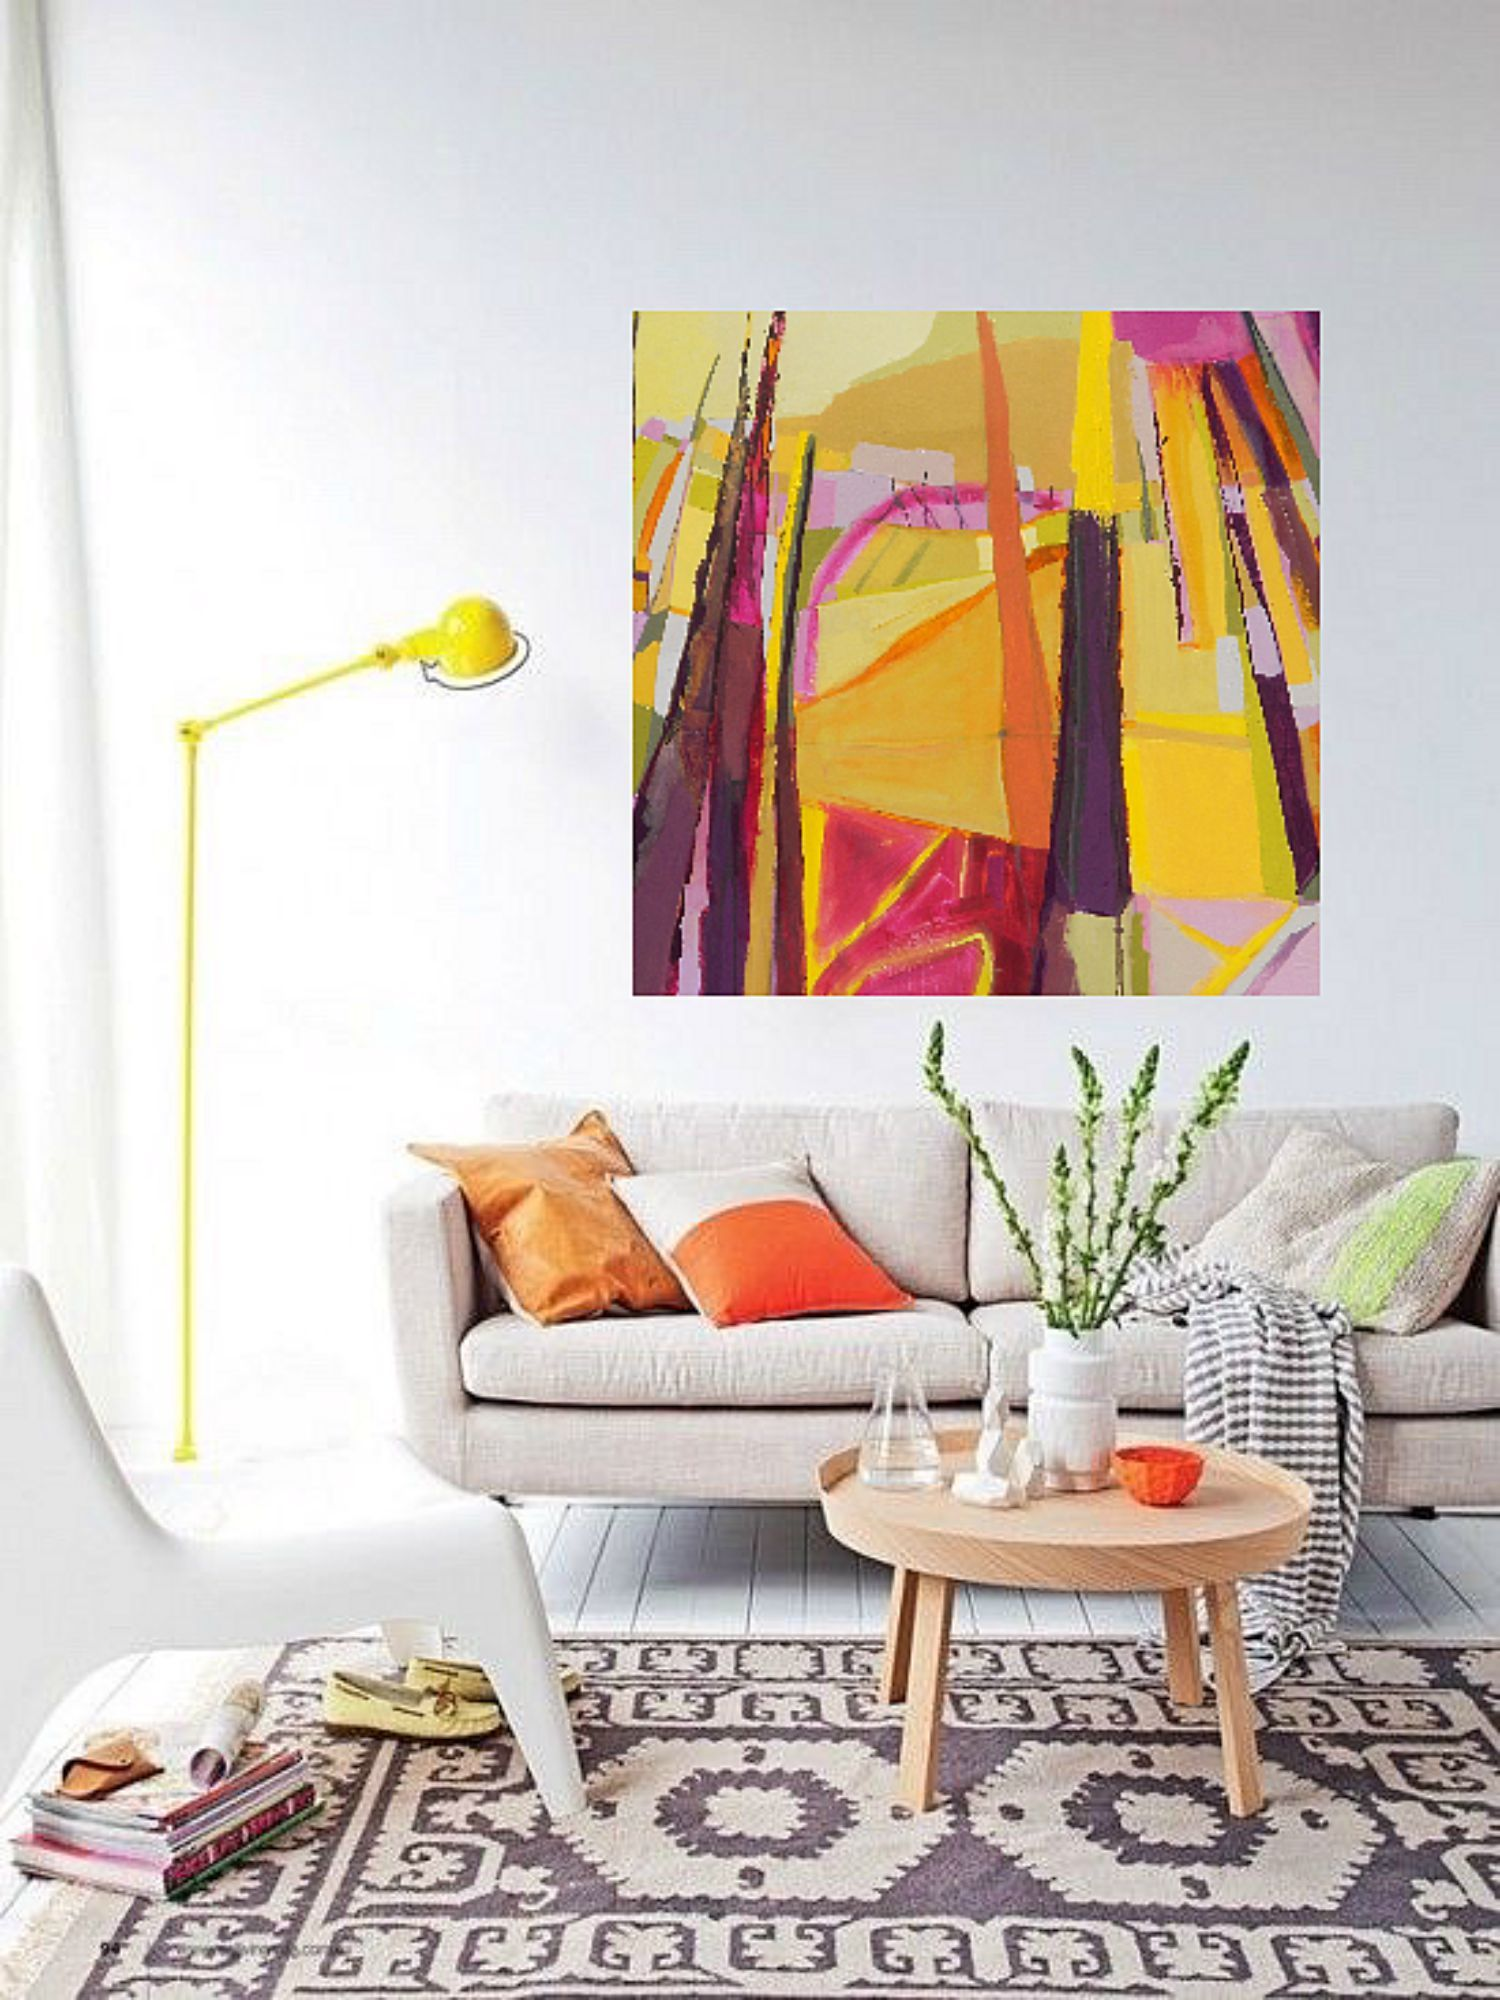 Bold Colorful Abstract Art Landscape Painting By Danielle Nelisse Completes Interior Design Accessories